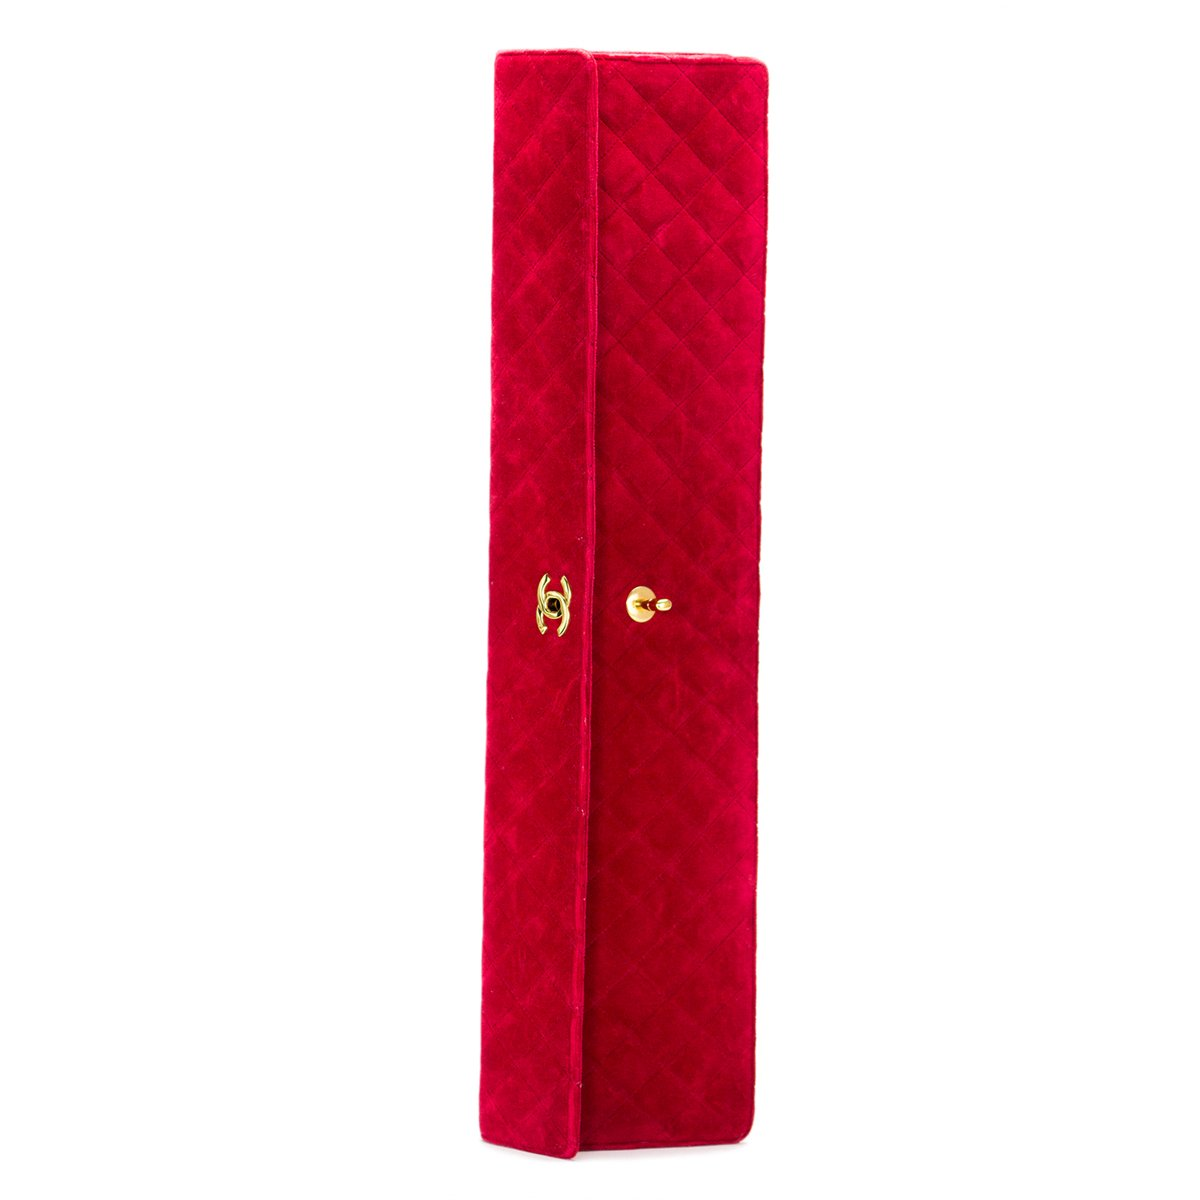 Chanel 80's Red Velvet Elongated Vintage Clutch